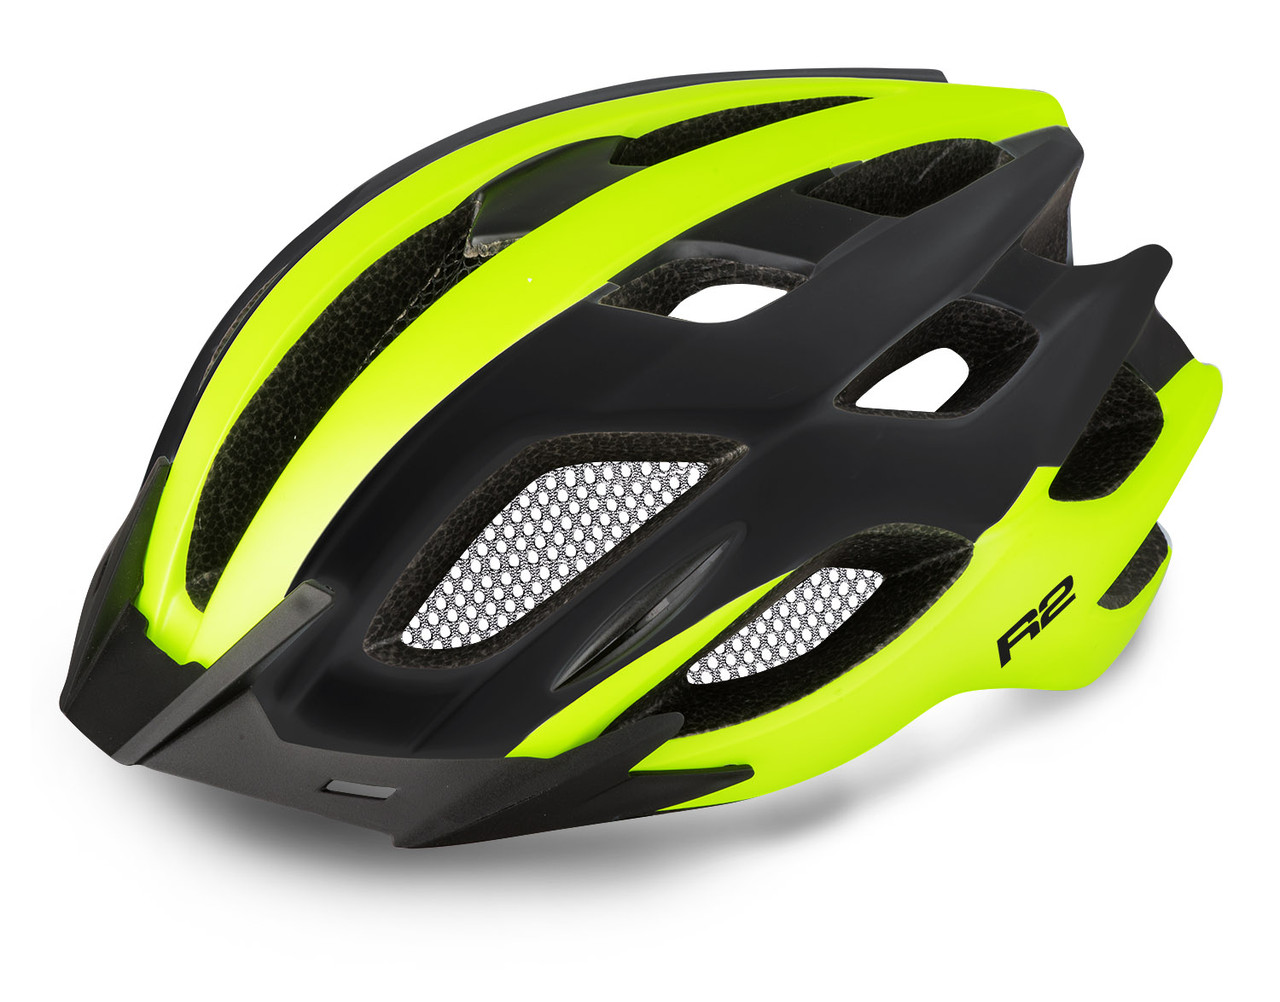 Шолом R2 Tour white, neon yellow, black, gloss M